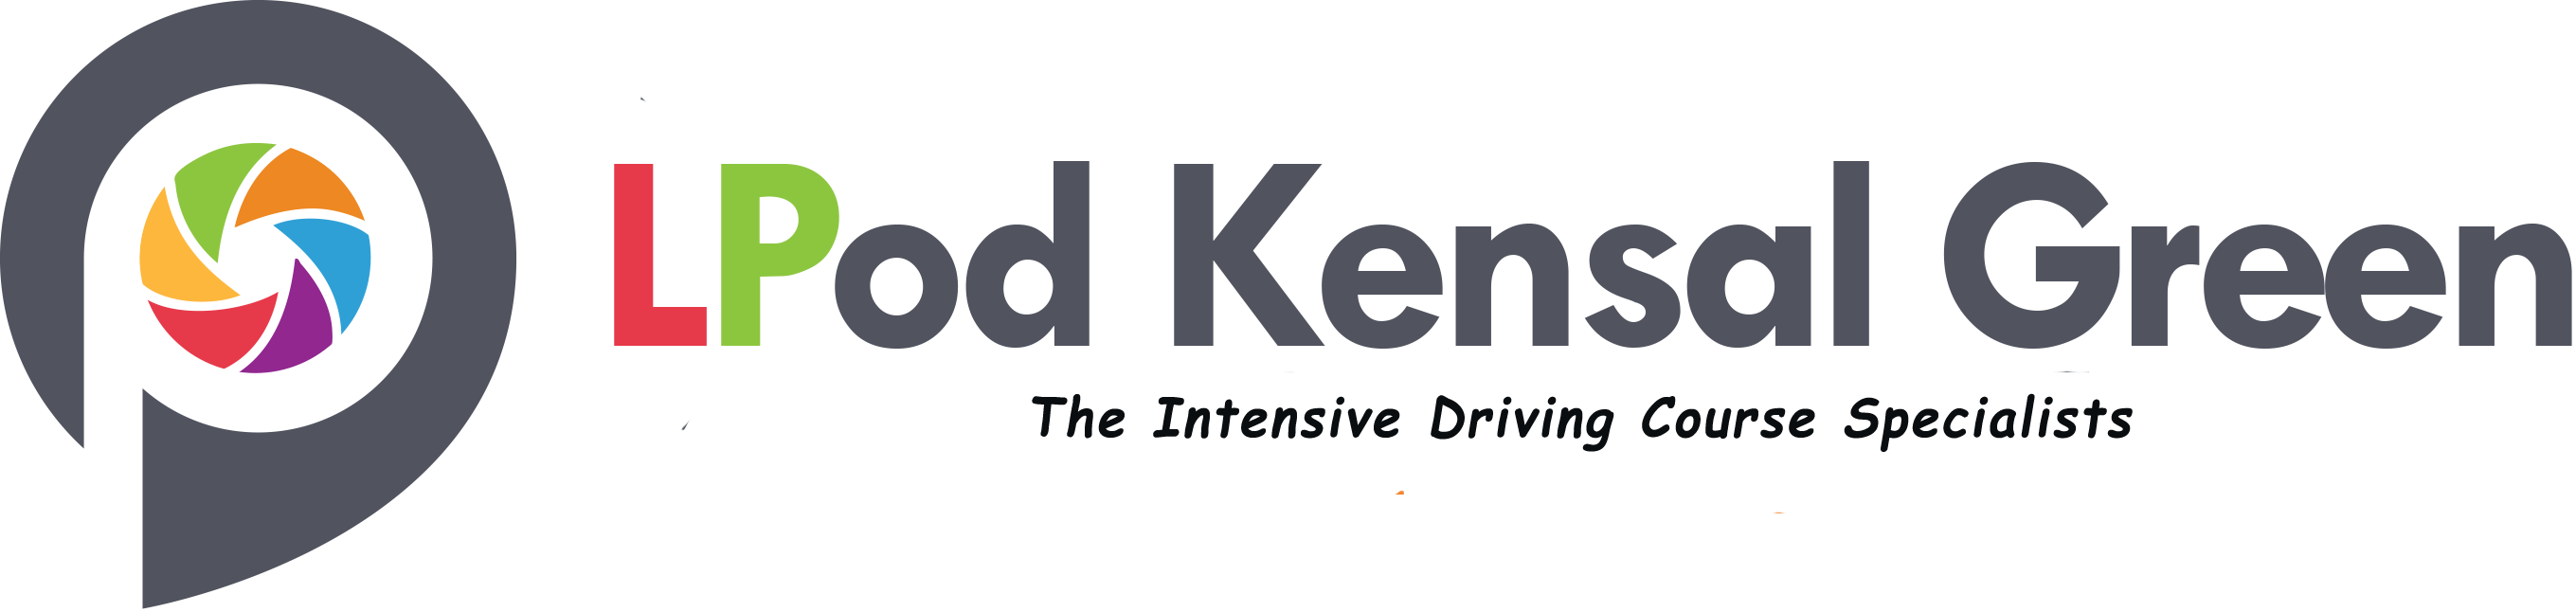 intensive driving courses kensal green , one week driving courses kensal green, fast pass driving courses kensal green , intensive driving course kensal green , driving school kensal green , automatic courses kensal green , automatic lessons kensal green, driving lessons kensal green,